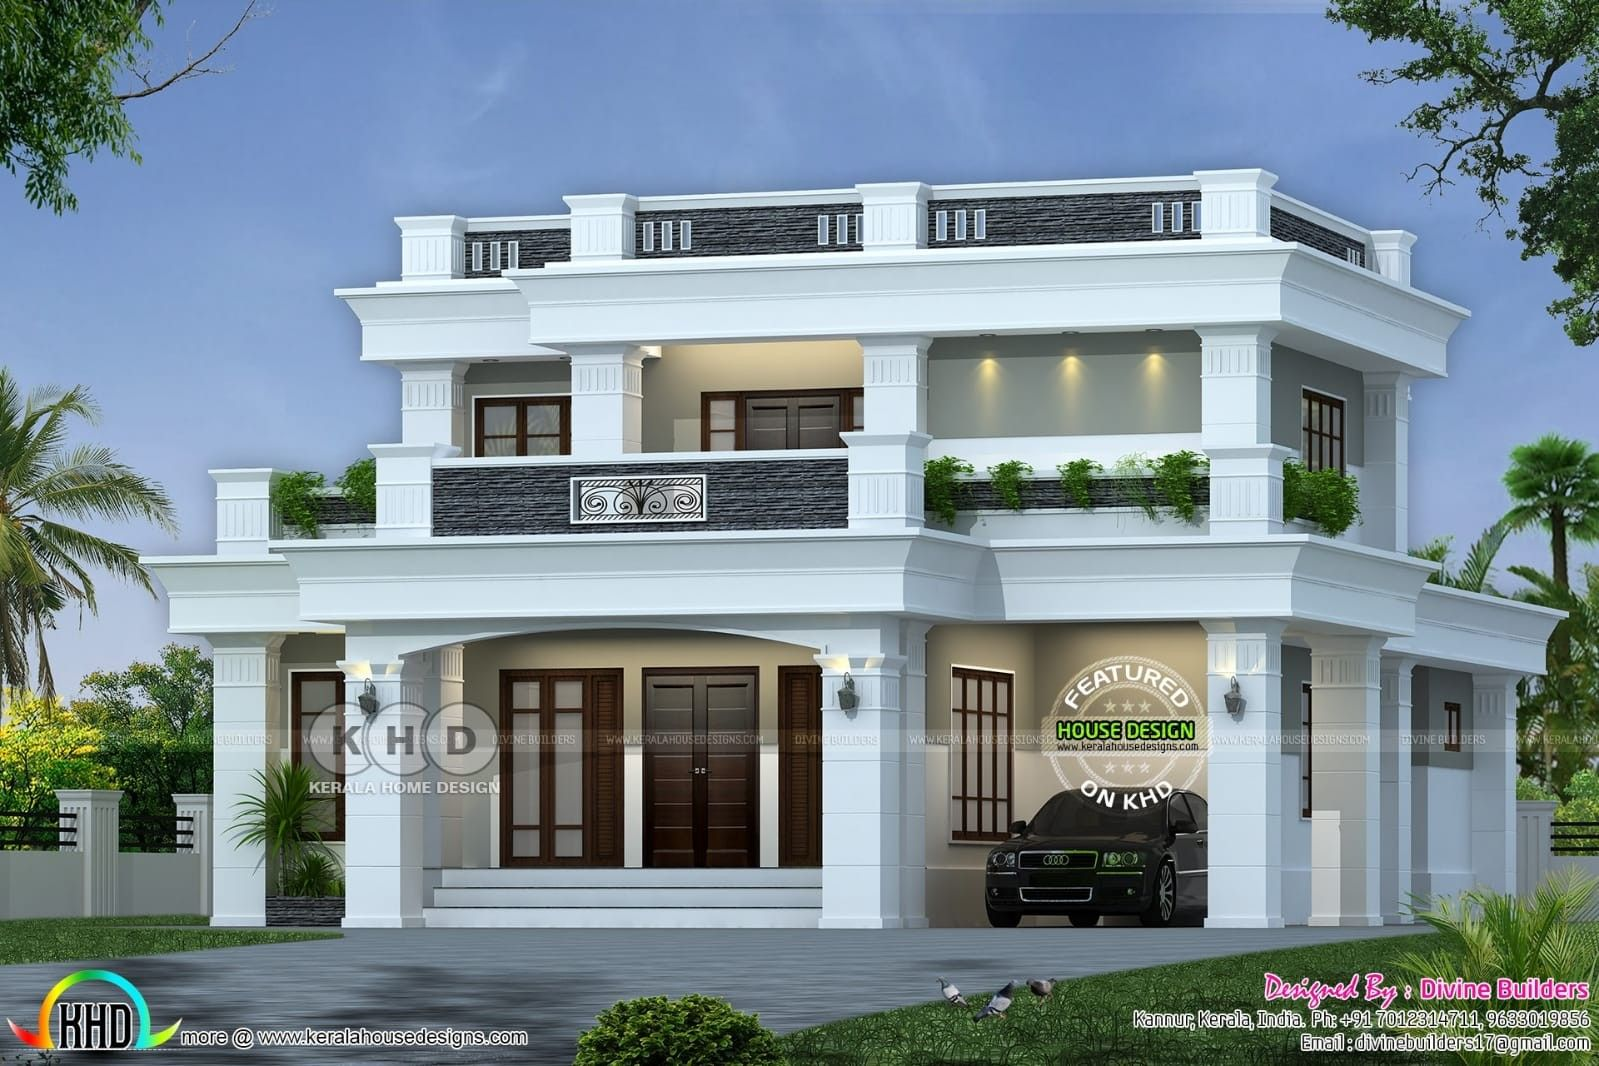 House front design my home modern family plans also pin by anthony jose on ma elevation in pinterest rh